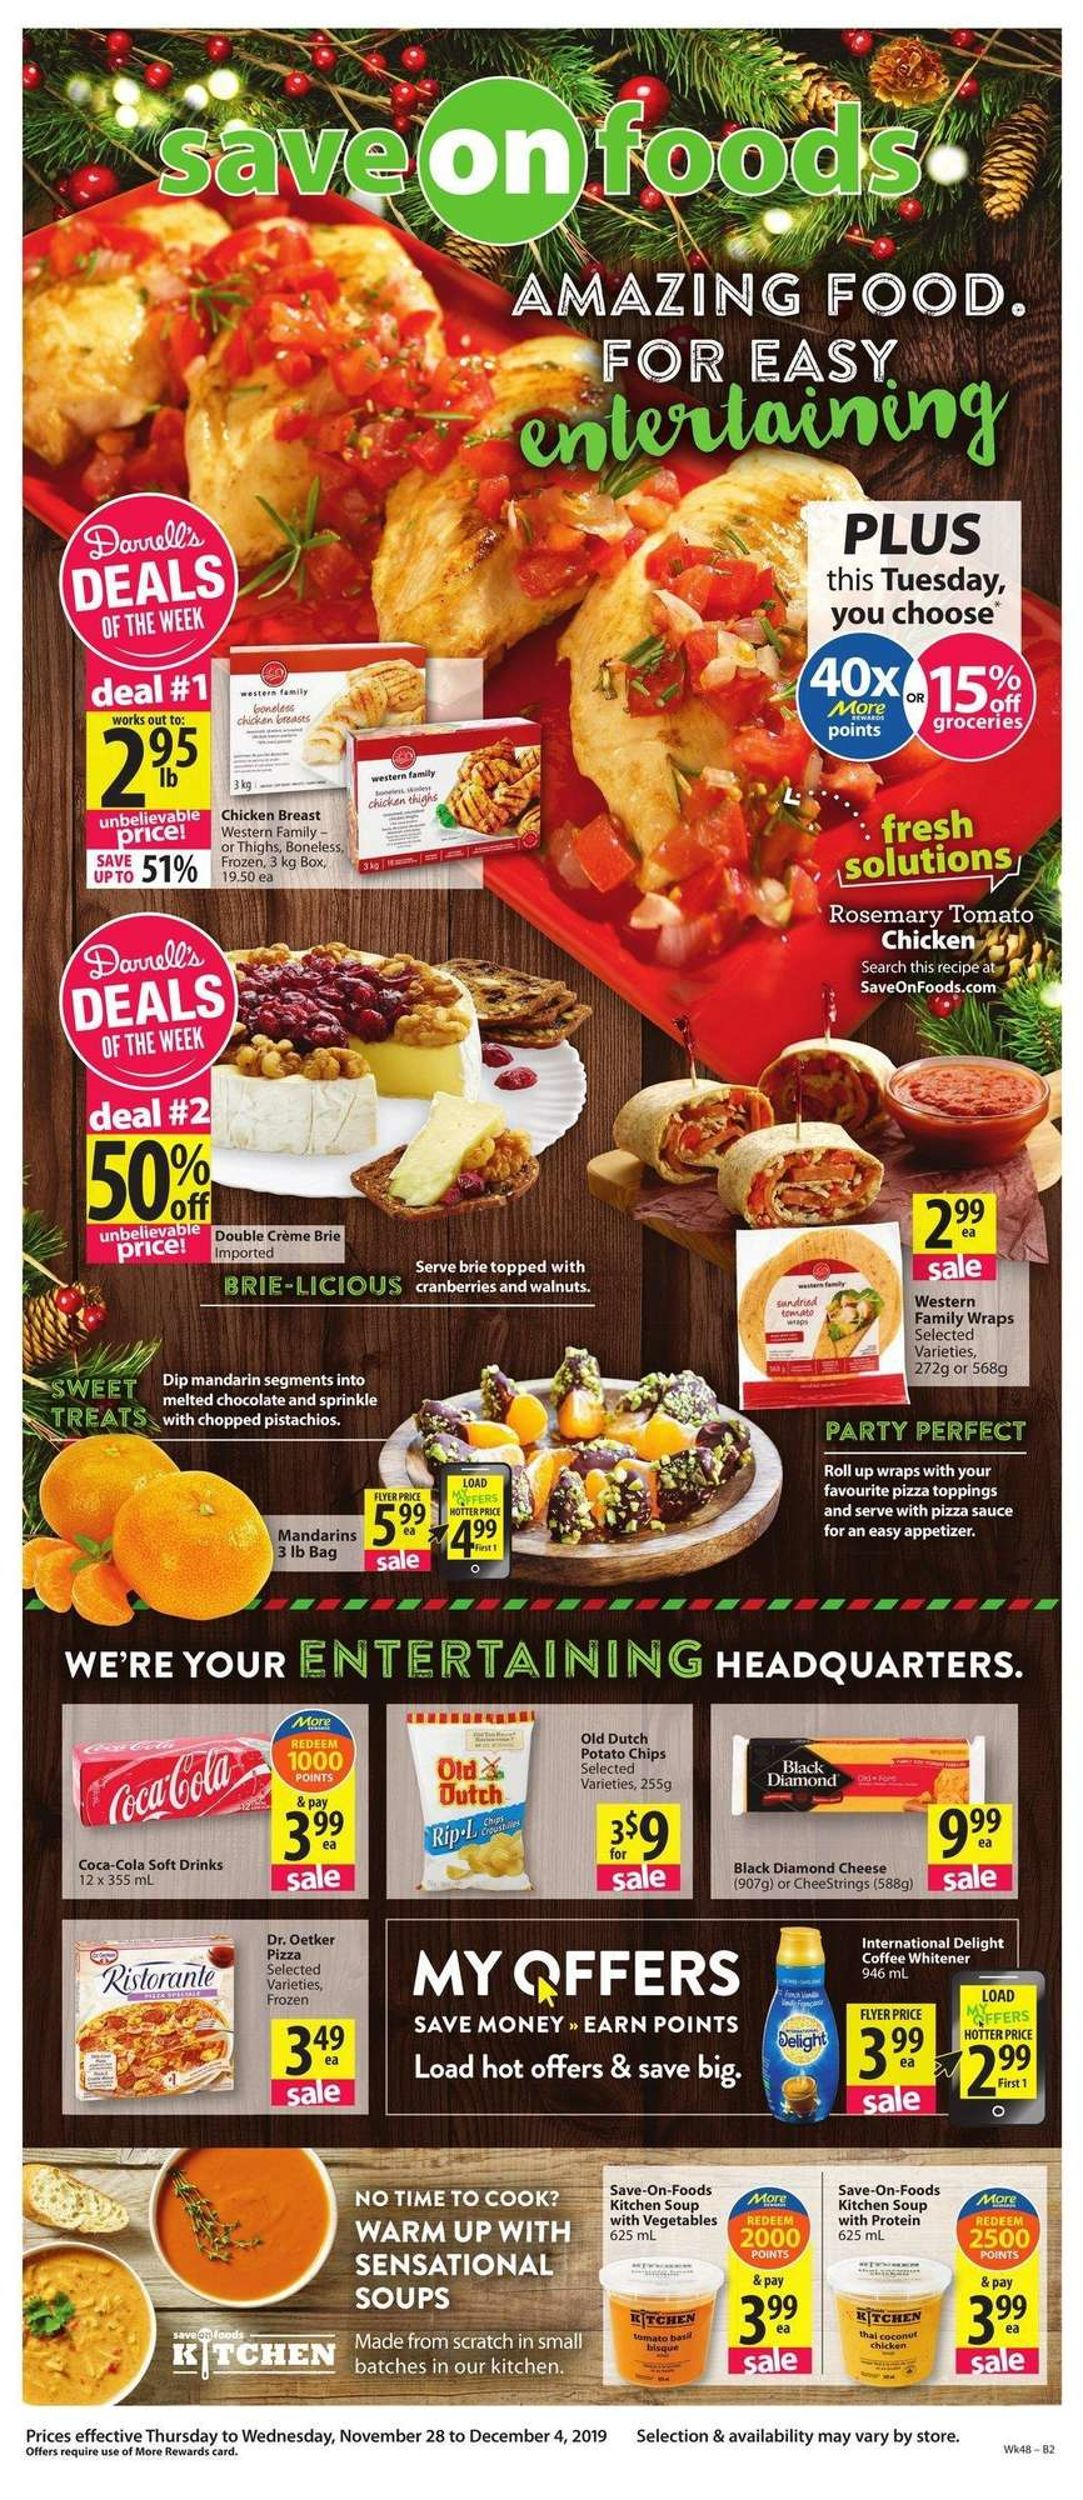 Save-On-Foods - HOLIDAY 2019 FLYER